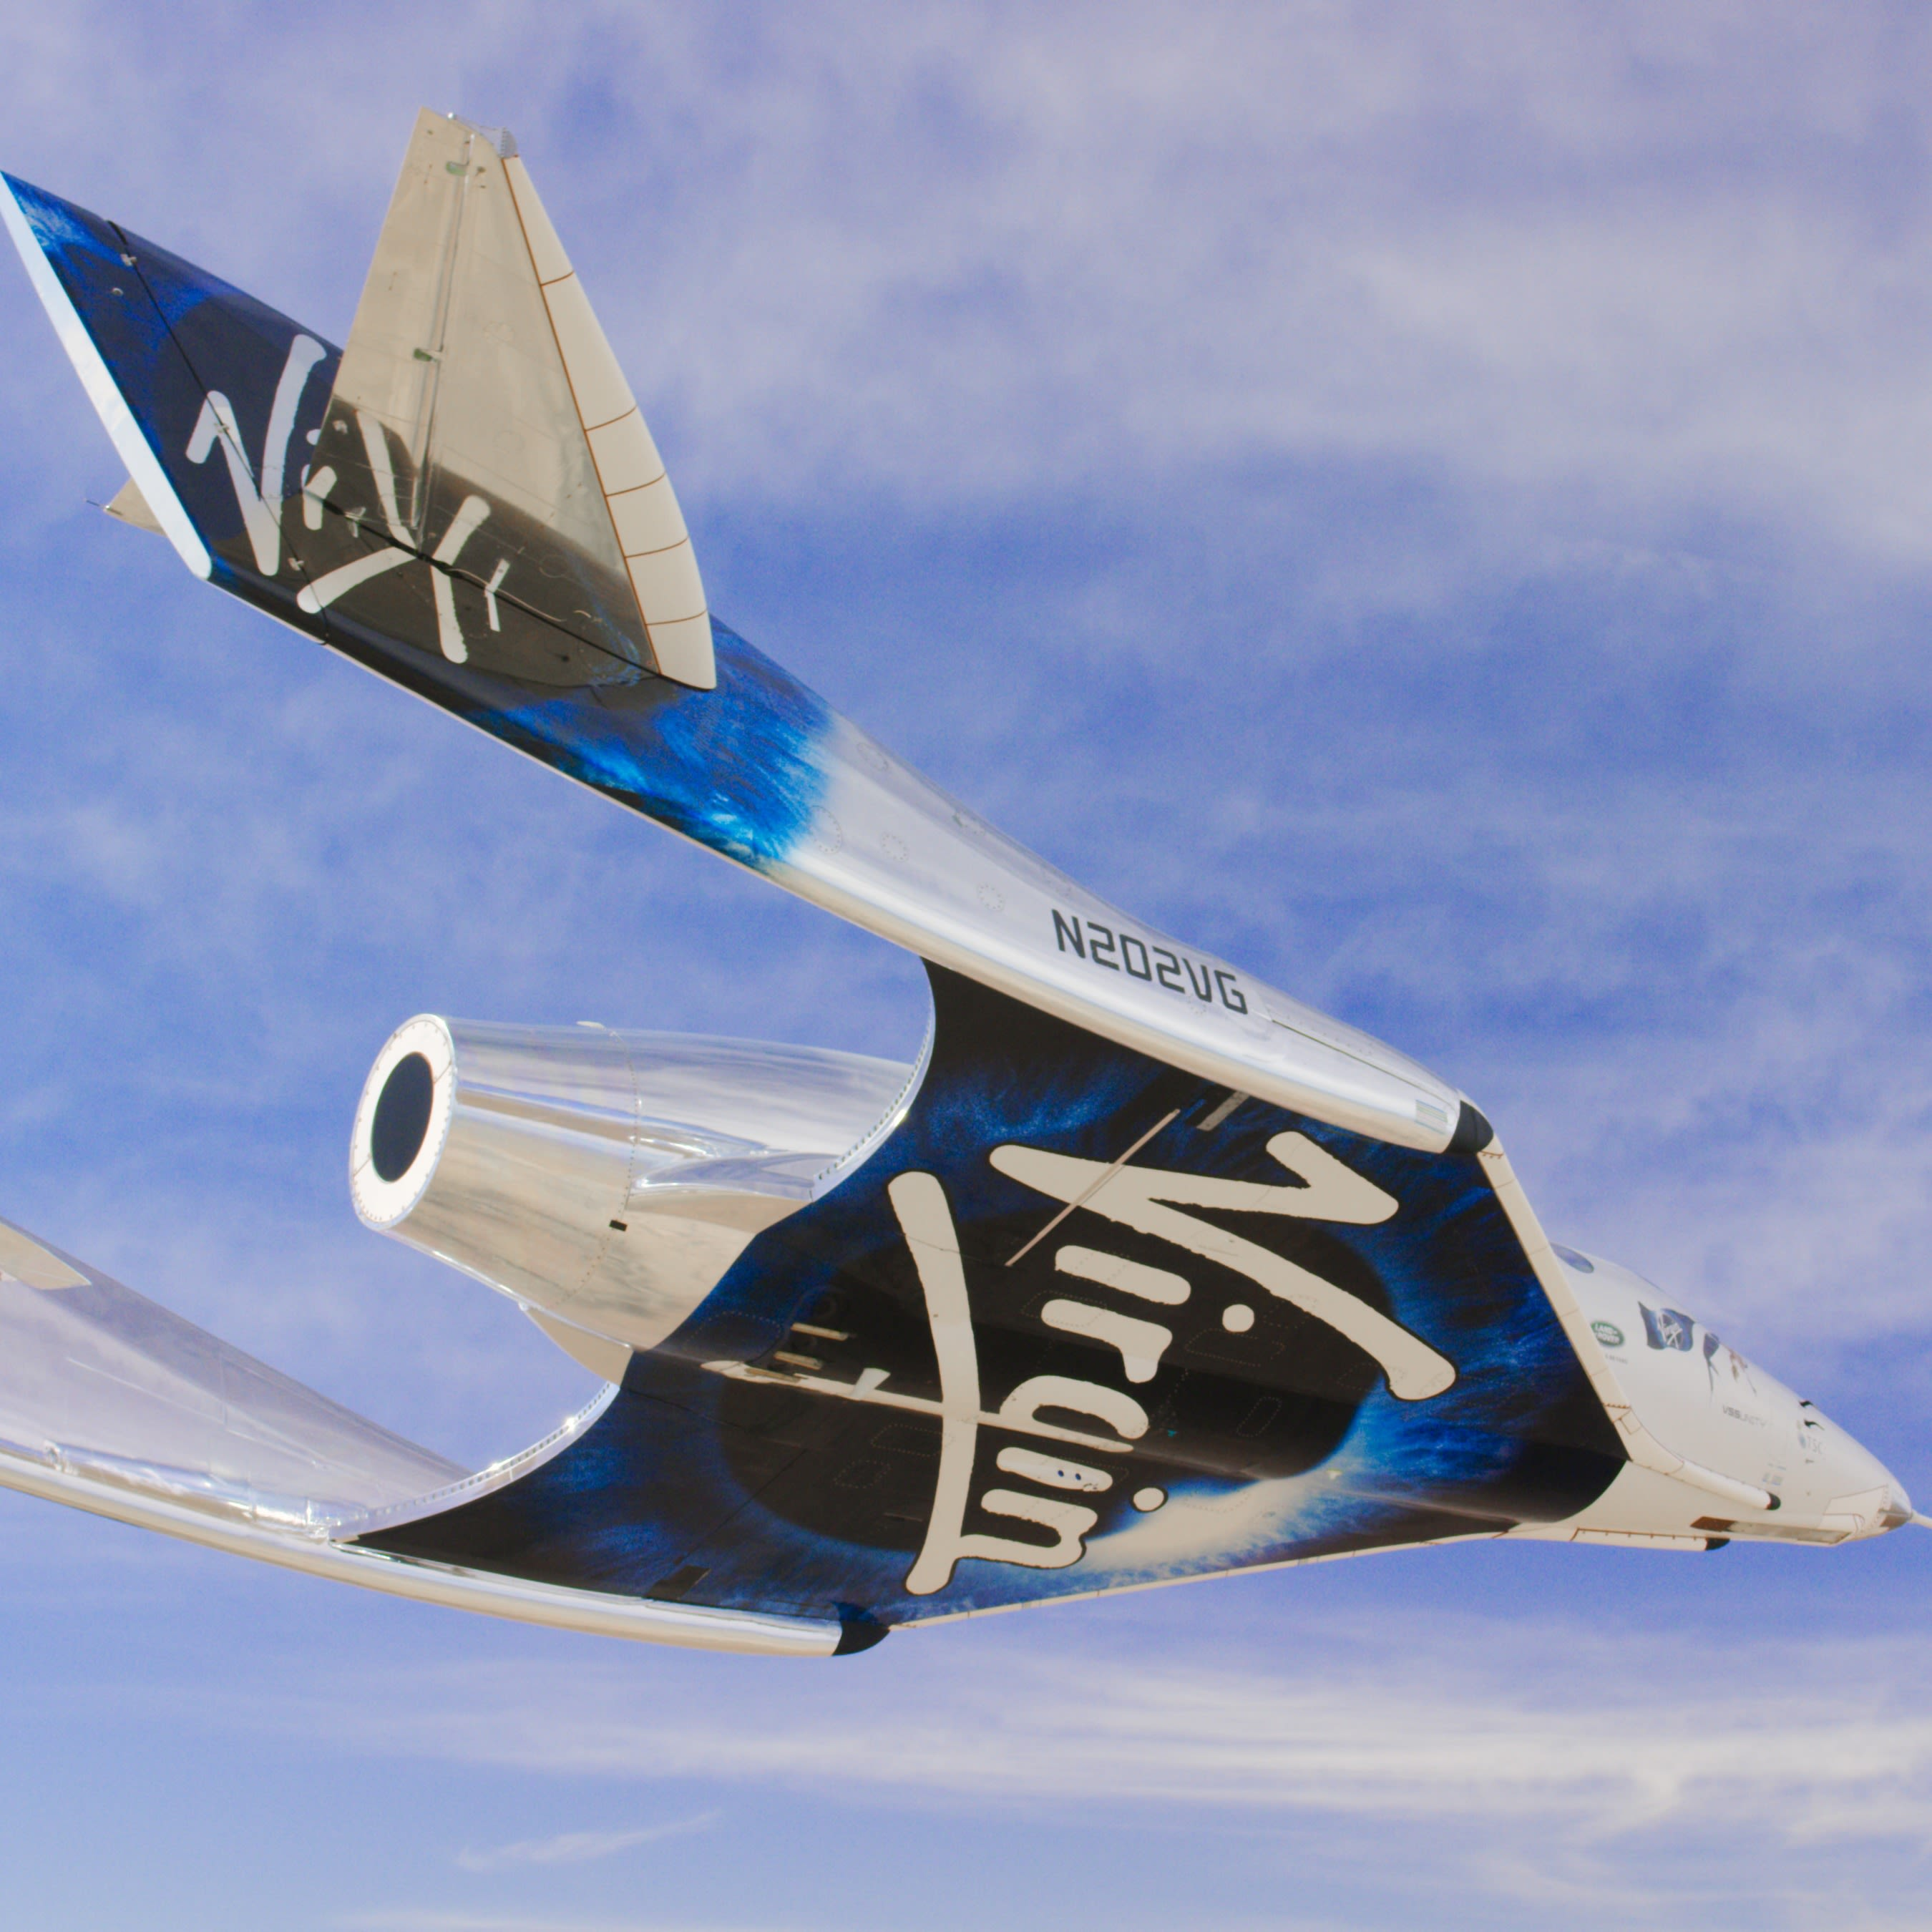 Virgin Galatic's SpaceshipTwo glides through the sky